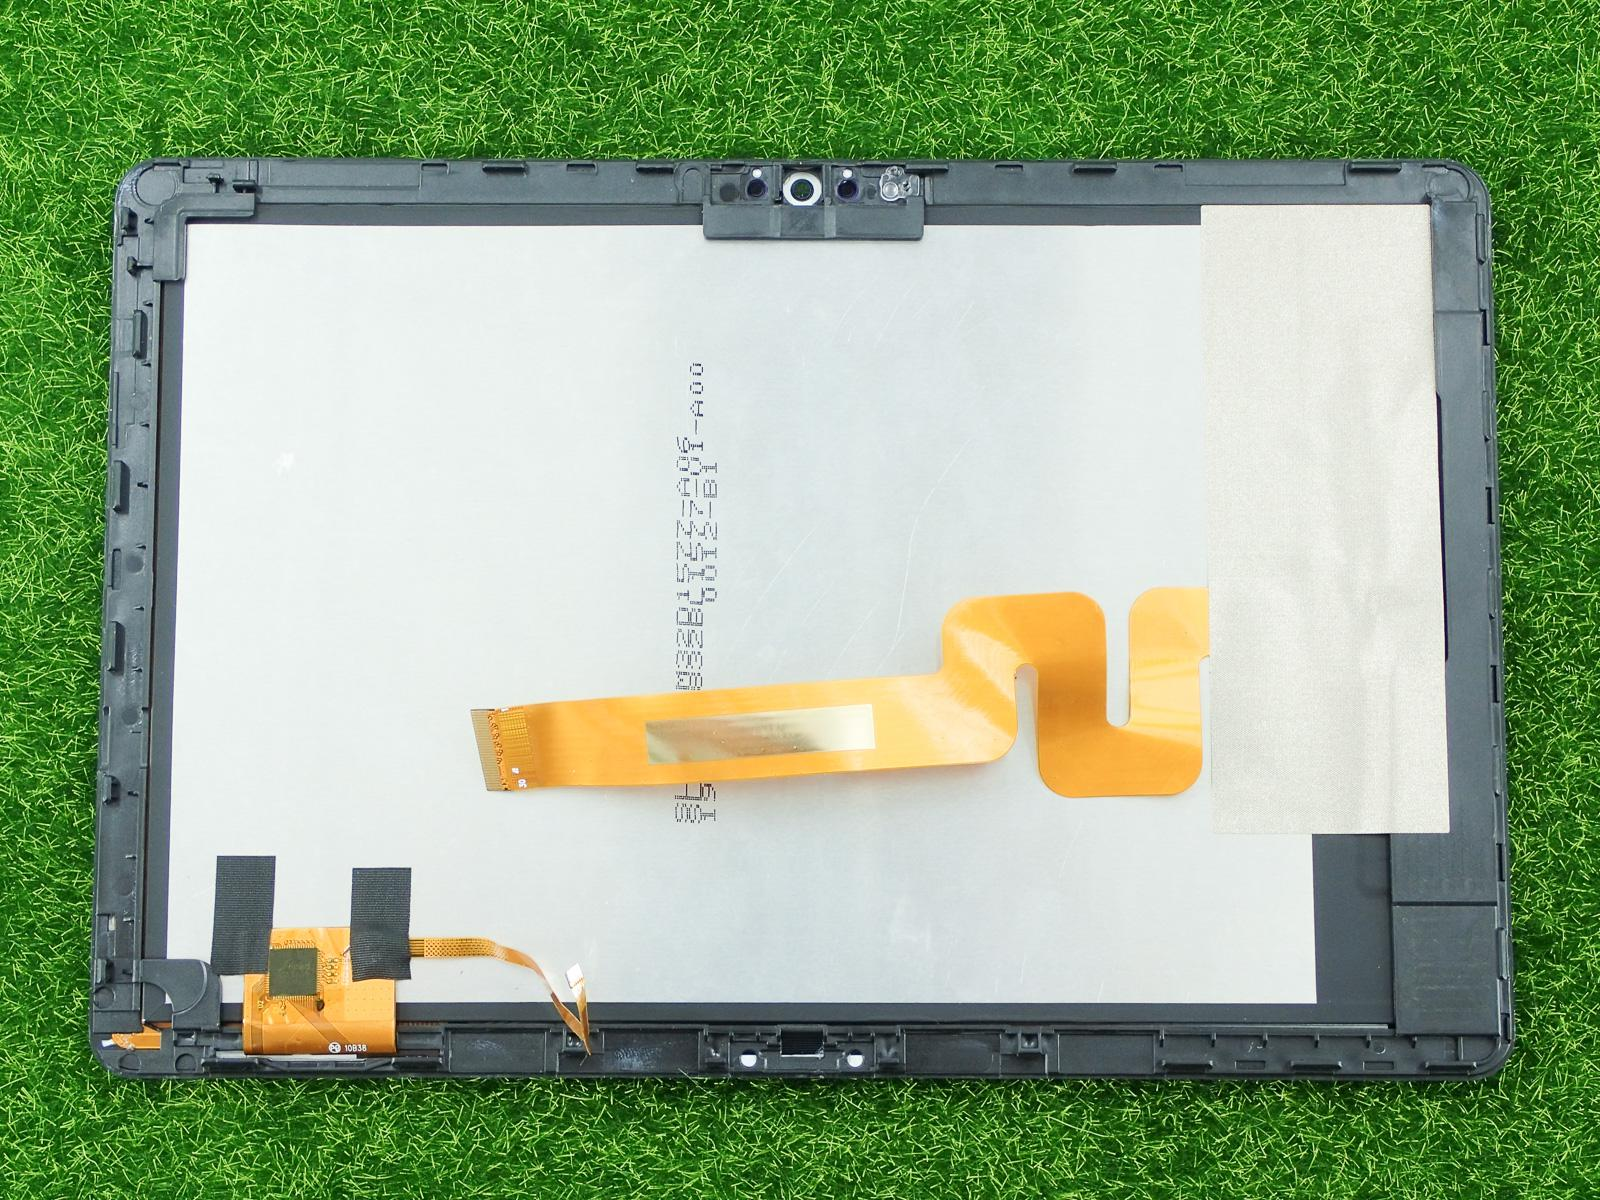 7F1A9CEF05DDC5420B384BF9BBDD6BC3 - Is Teclast T30 worth it? Check out this teardown review!